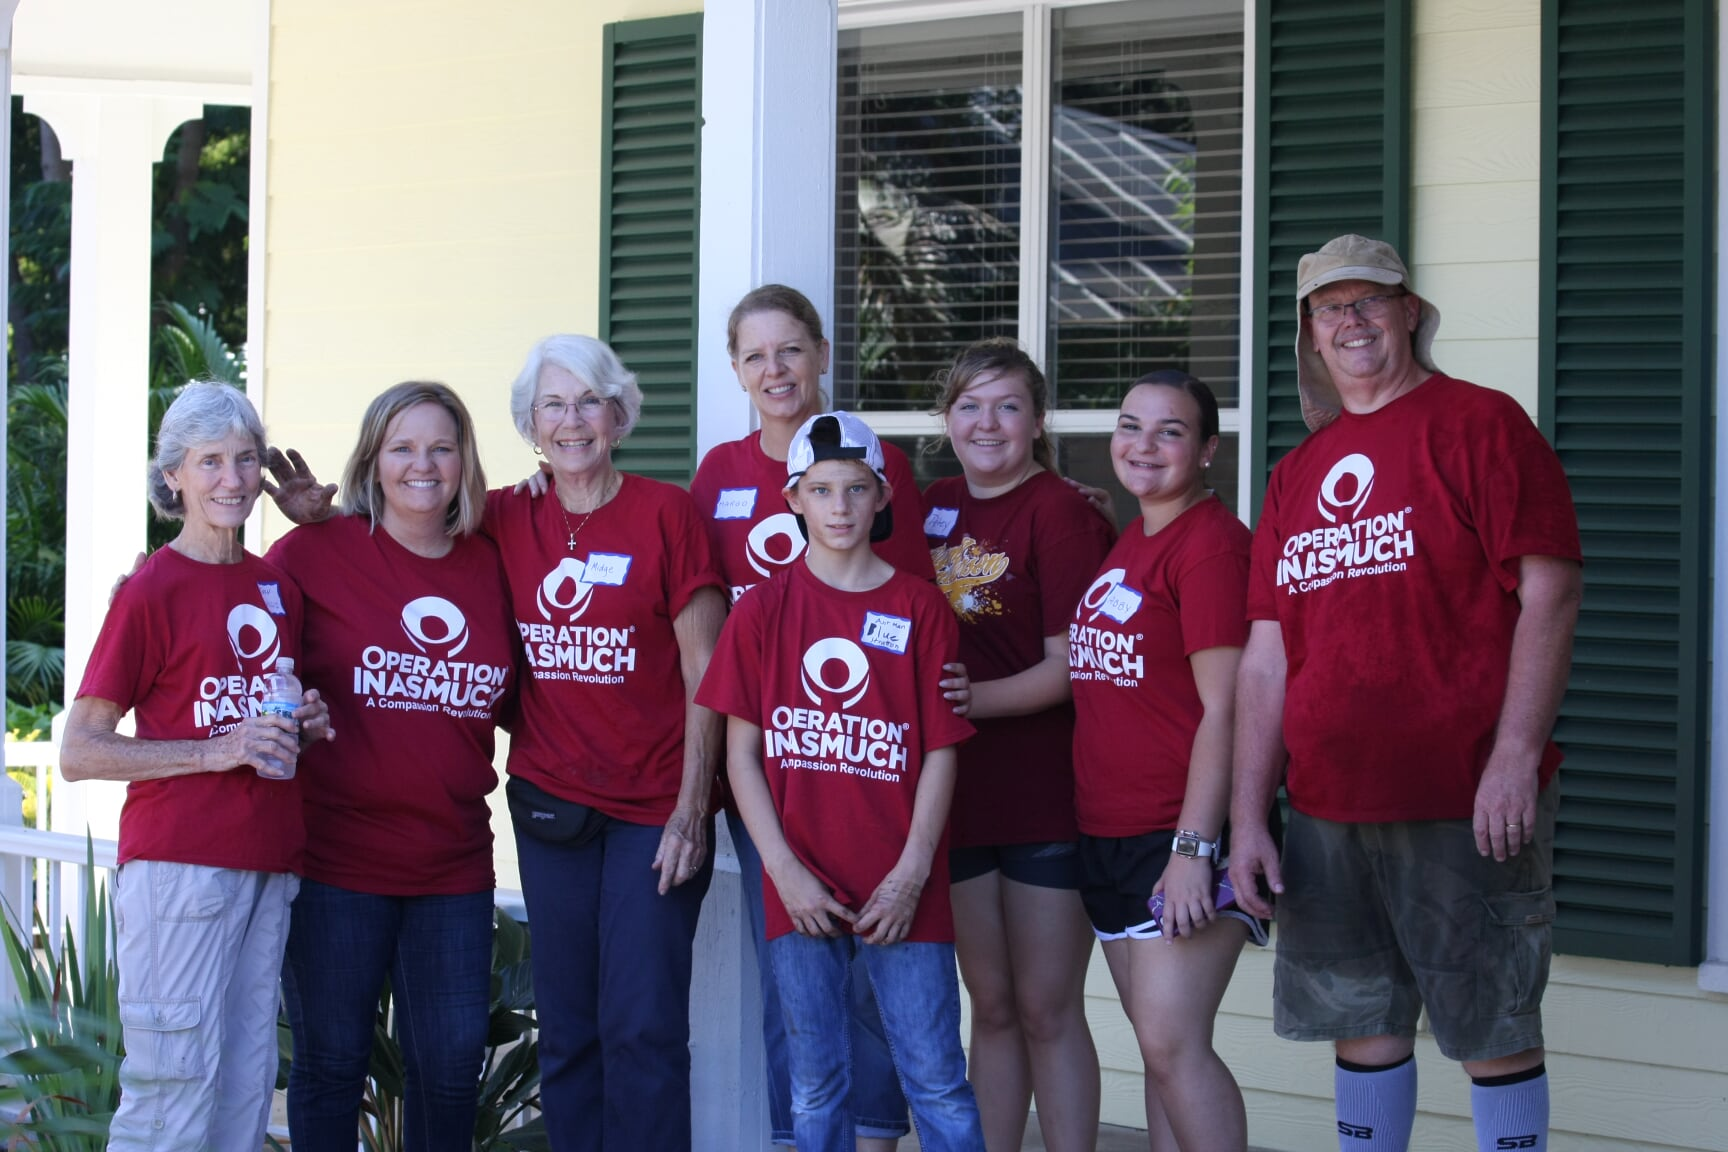 local-missions-with-north-stuart-baptist-church-martin-county-15.JPG